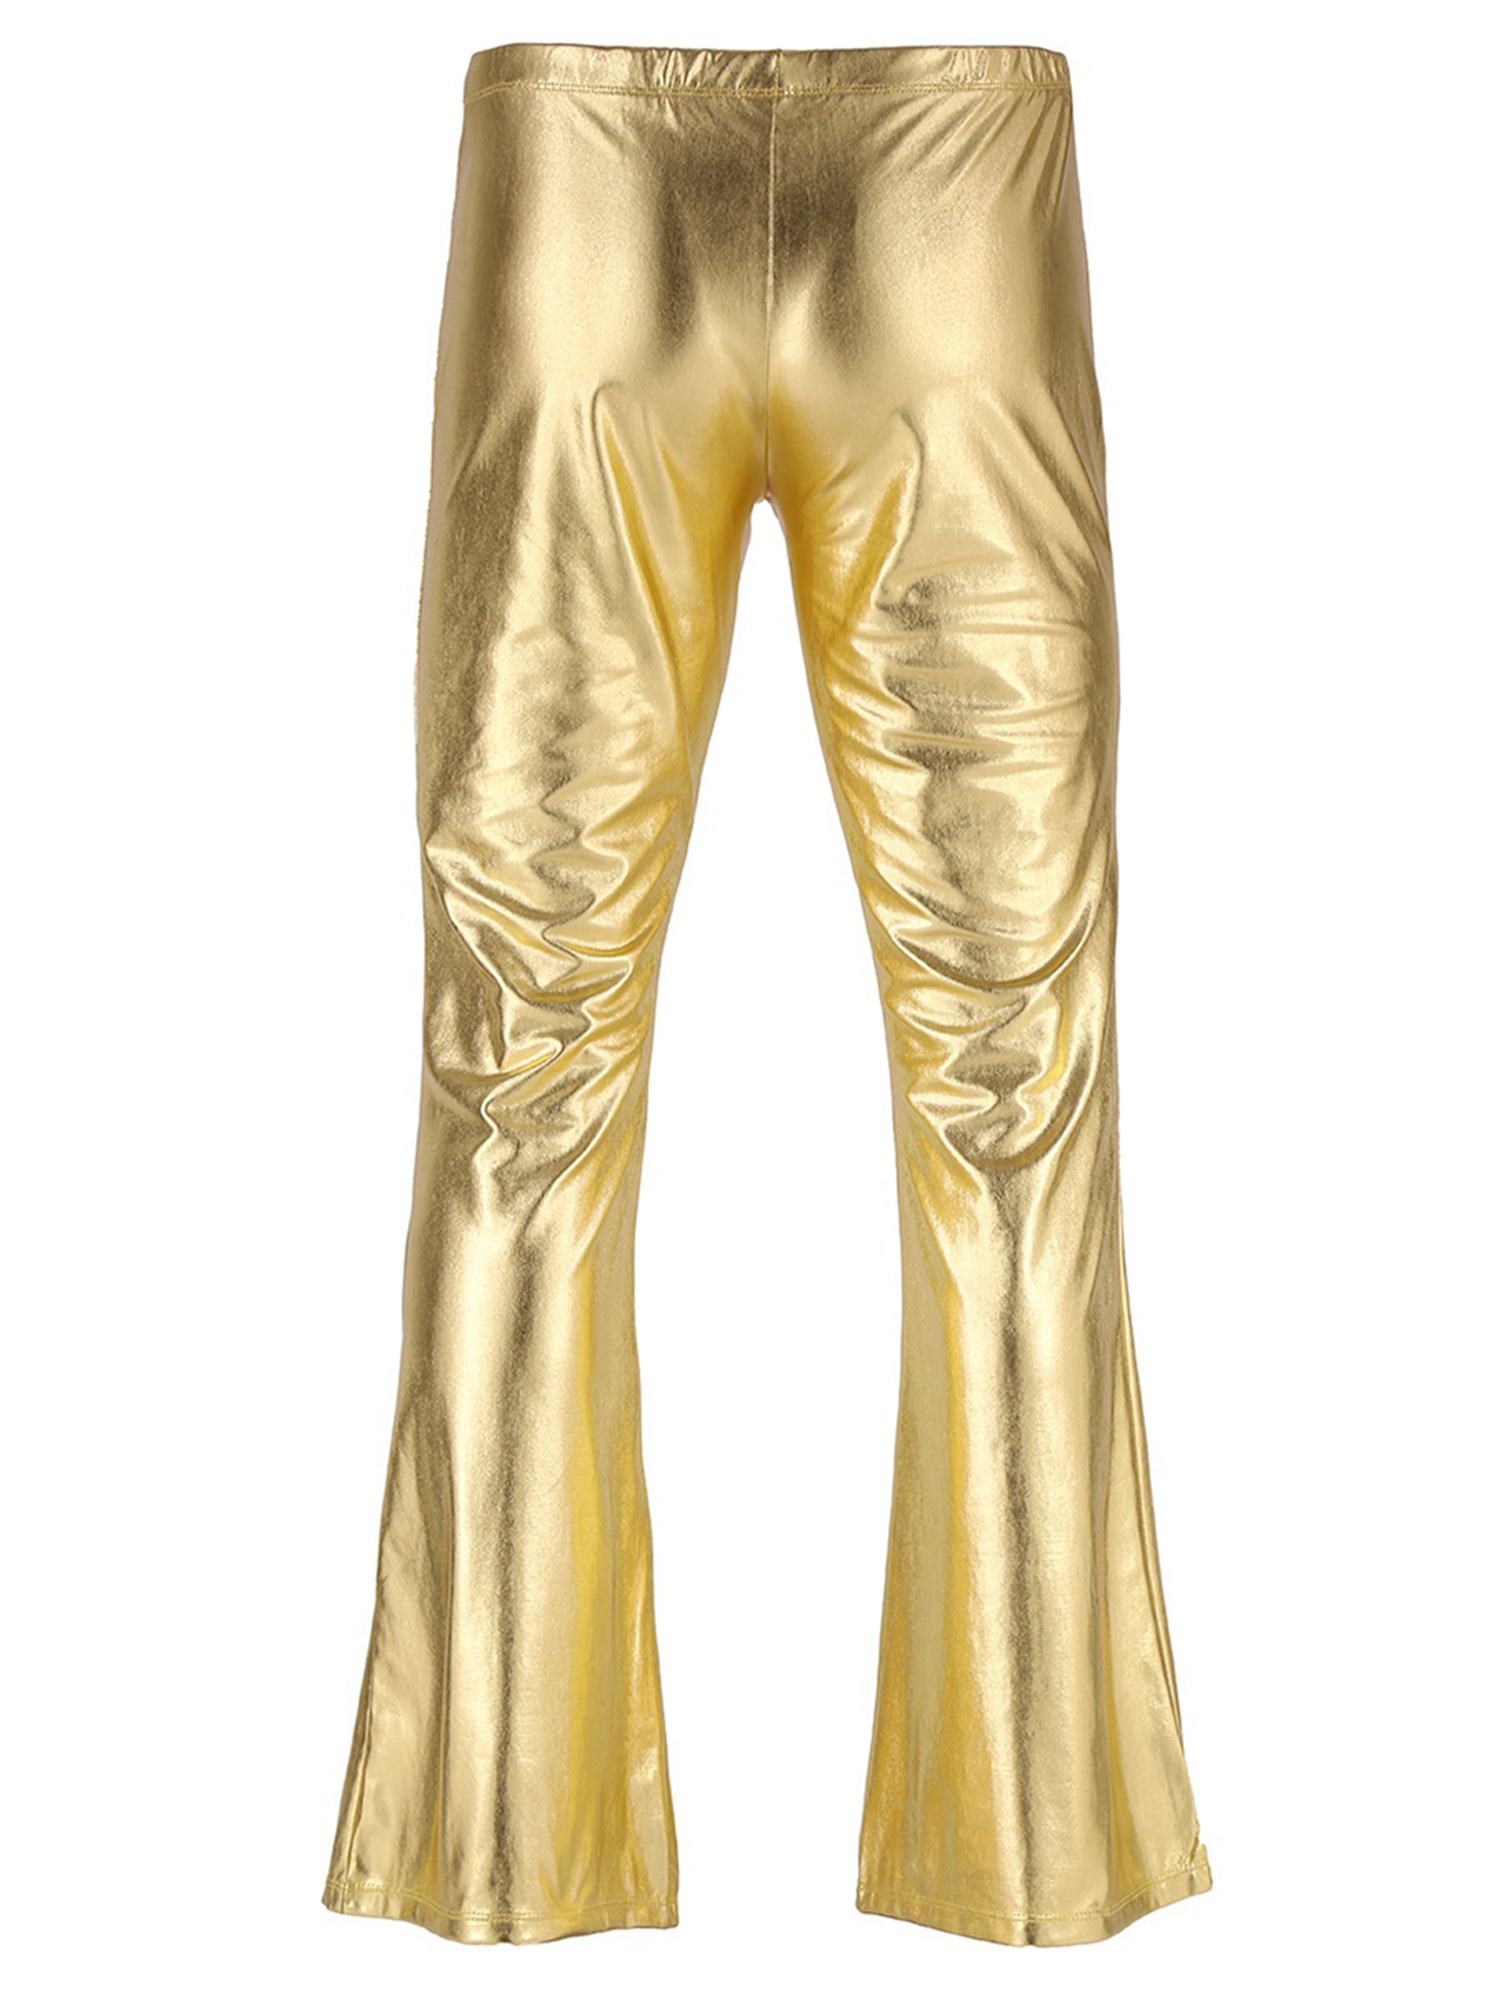 ChicTry Adults Mens Shiny Metallic Disco Pants with Bell Bottom Flared Long Pants Dude Costume Trousers for 70's Theme Parties 23